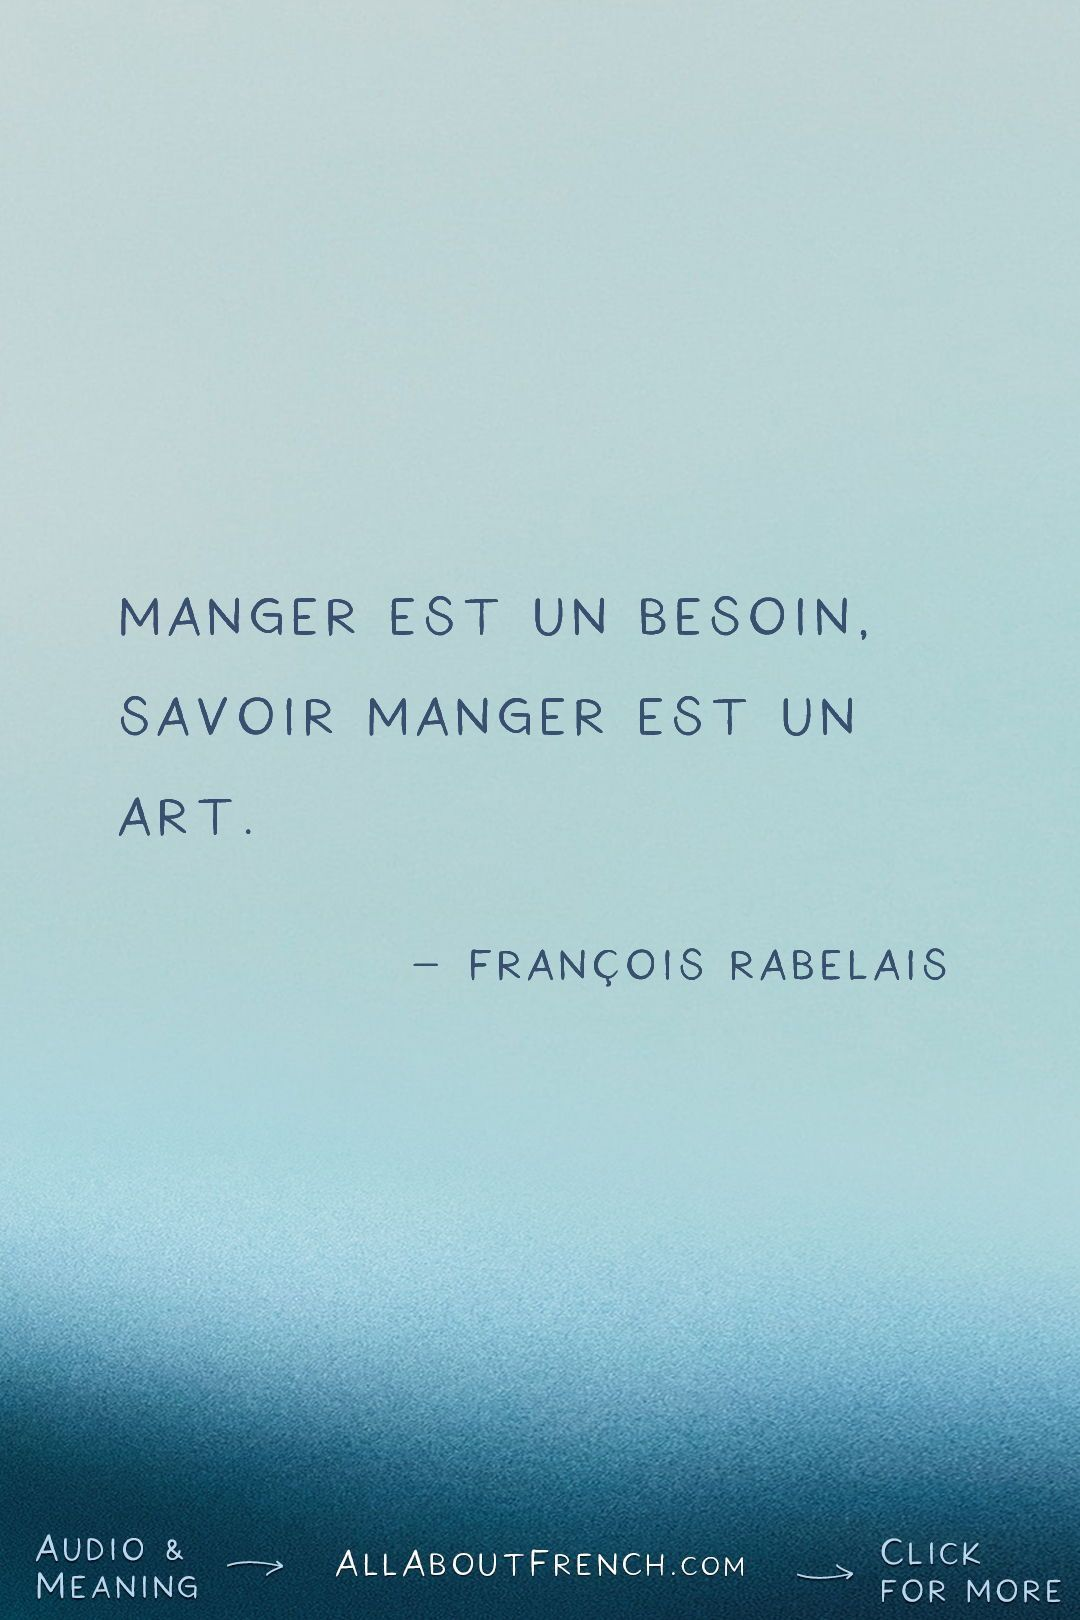 Learn French Quotes With Free Audio Examples French Quotes French Quotes Translated French Lessons For Beginners